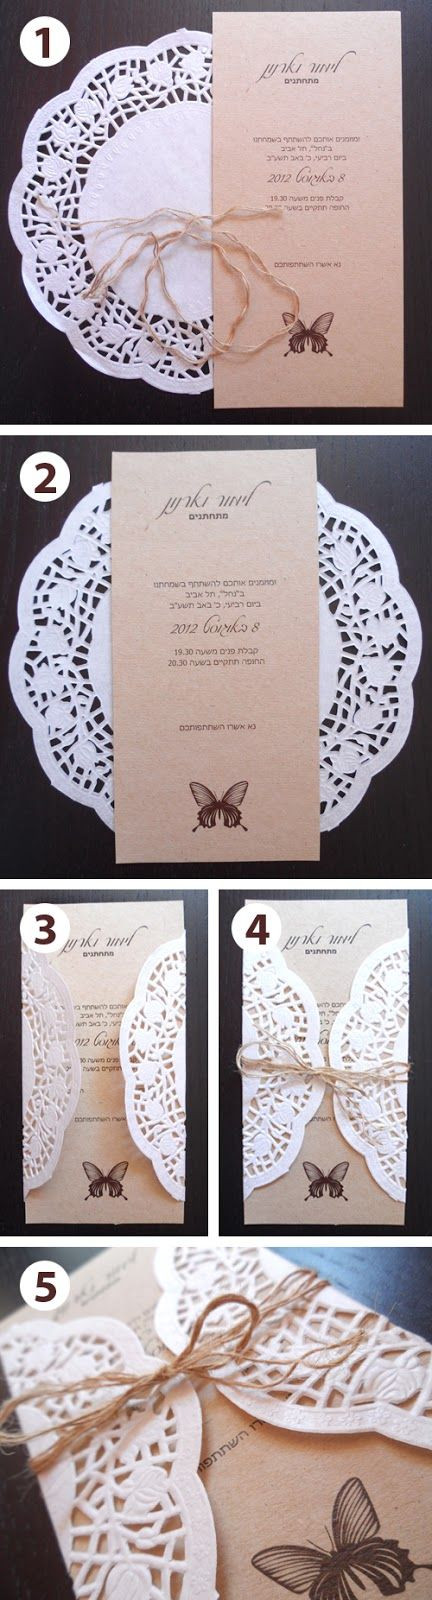 "PRODUTO POSSÍVEL Wedding Program $13.49 ~2 packs 8.5x11"" tan cardstock HobbyLobby ($3.99-1/2 off) ~ 8 packs 8"" doilies HobbyLobby ($9.60-40% off) ~Twine (I have)"